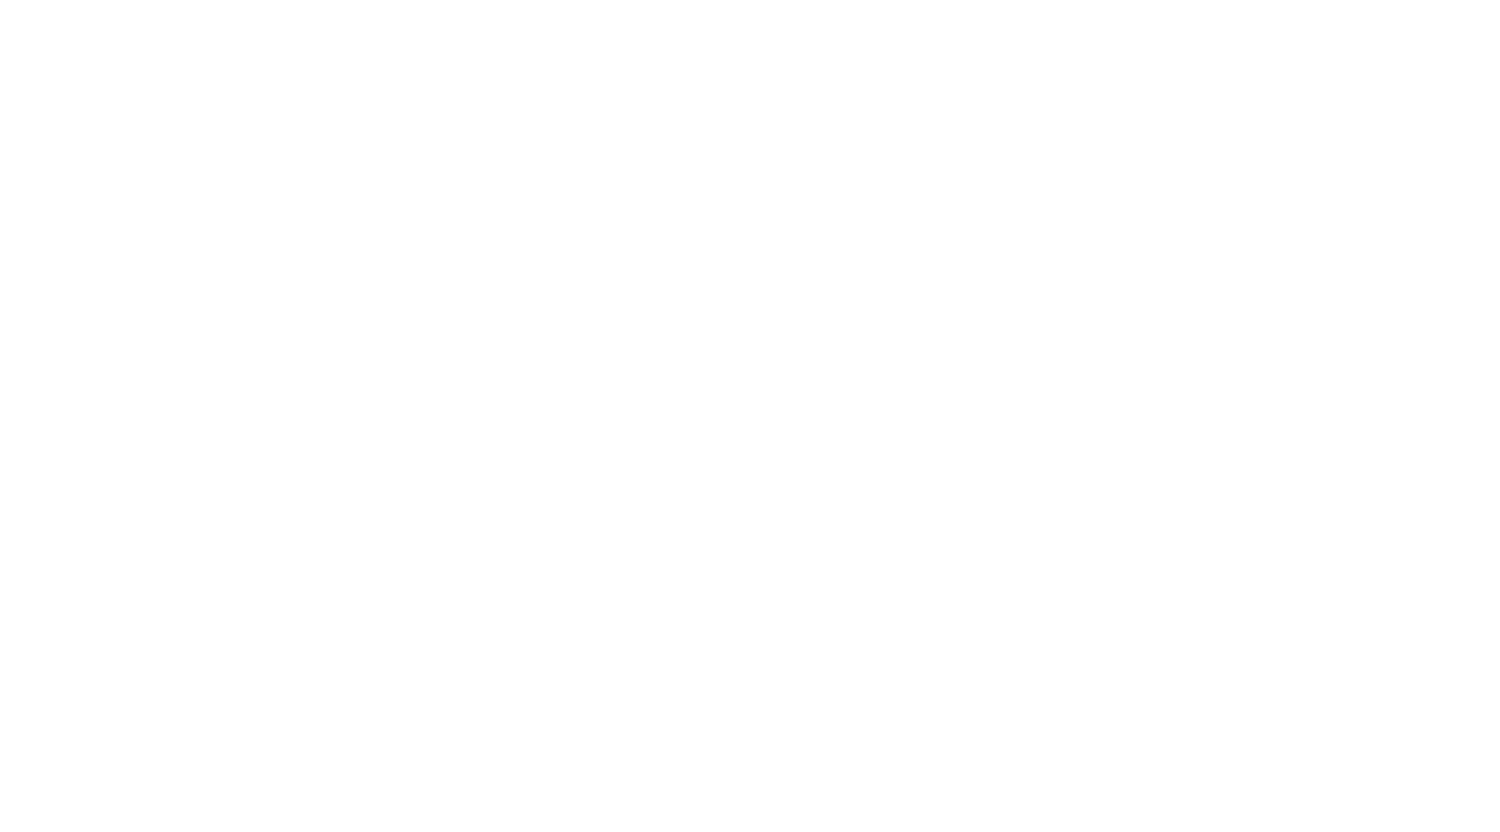 1200 WORKS